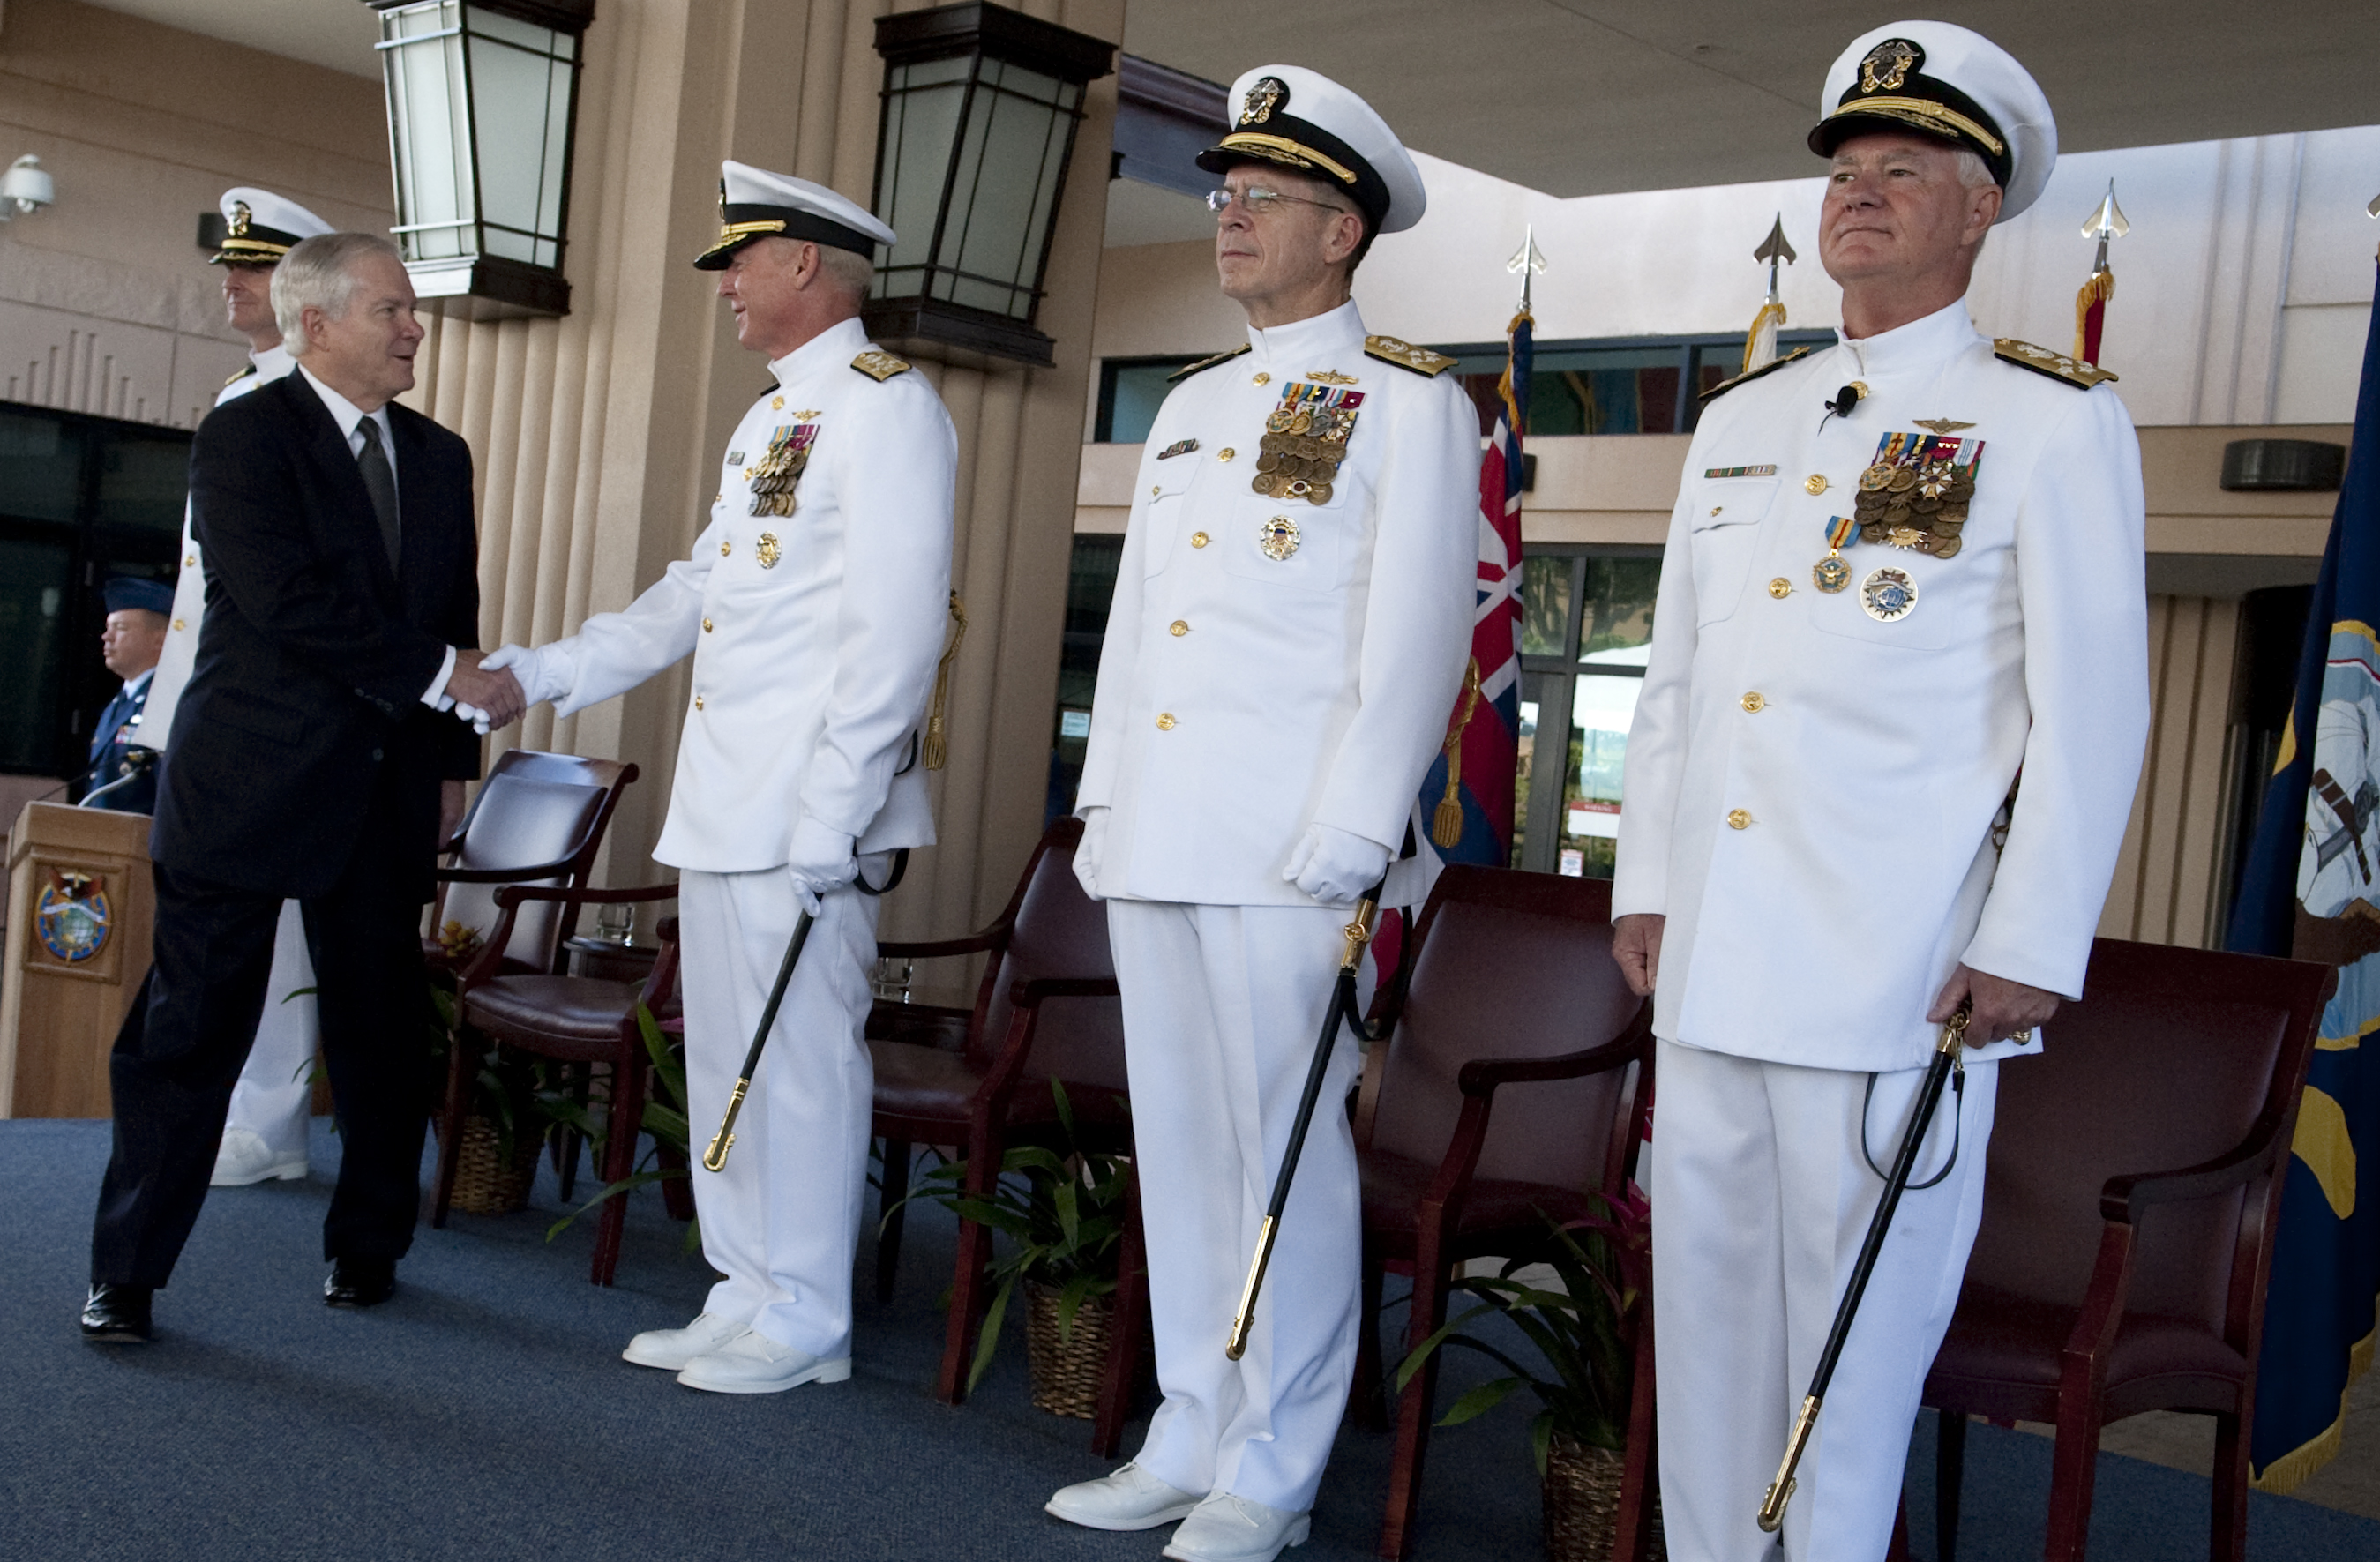 Uniforms of the United States Navy | Military Wiki | FANDOM powered